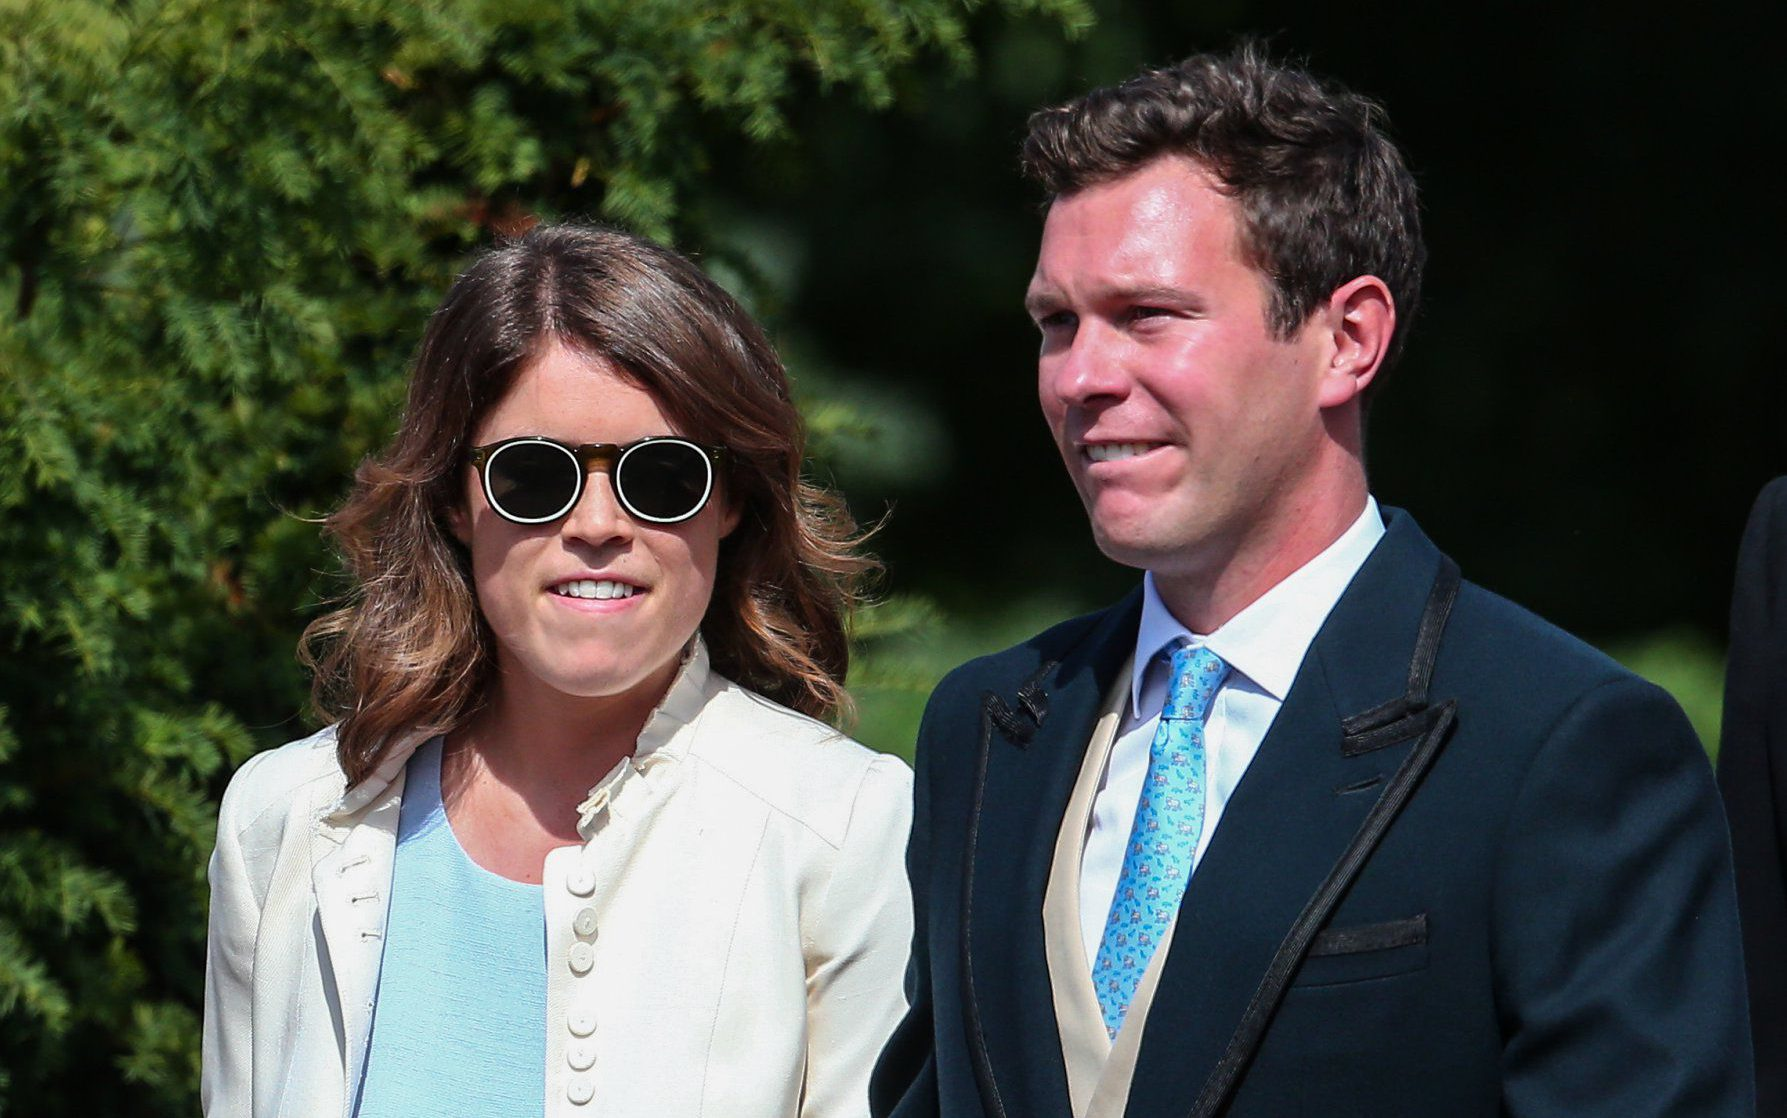 The wedding of Charlie Van Straubenzee and Daisy Jenks at St. Mary the Virgin Church in Frensham Featuring: Princess Eugenie, Jack Brooksbank Where: Frensham, United Kingdom When: 04 Aug 2018 Credit: John Rainford/WENN